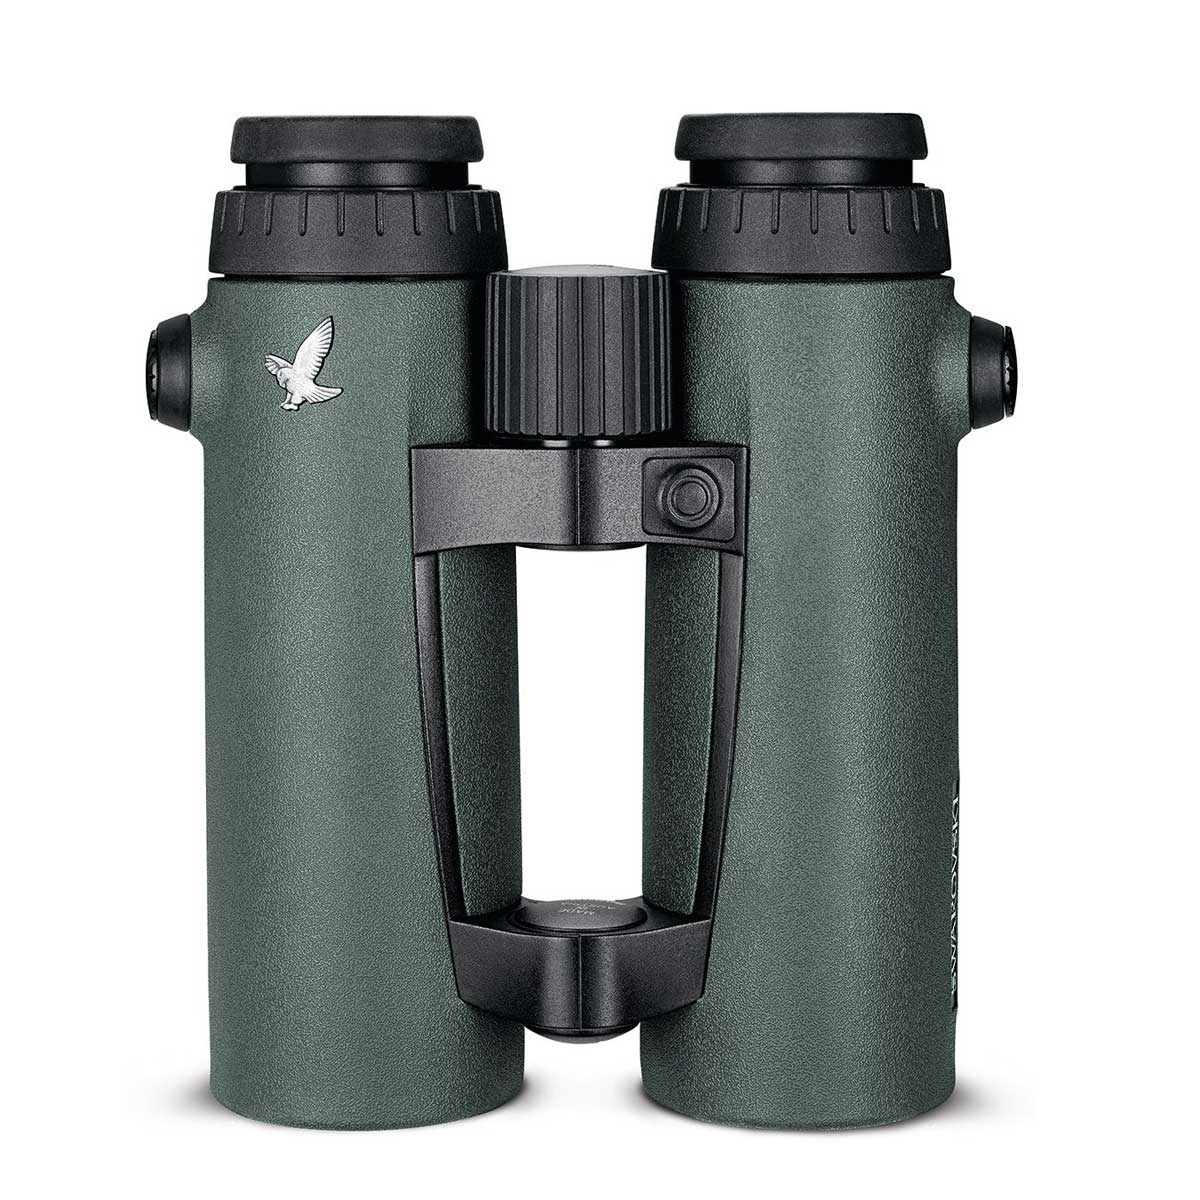 In Design; Swarovski Ccsp Comfort Carrying Strap Pro For Field Pro Binoculars Novel